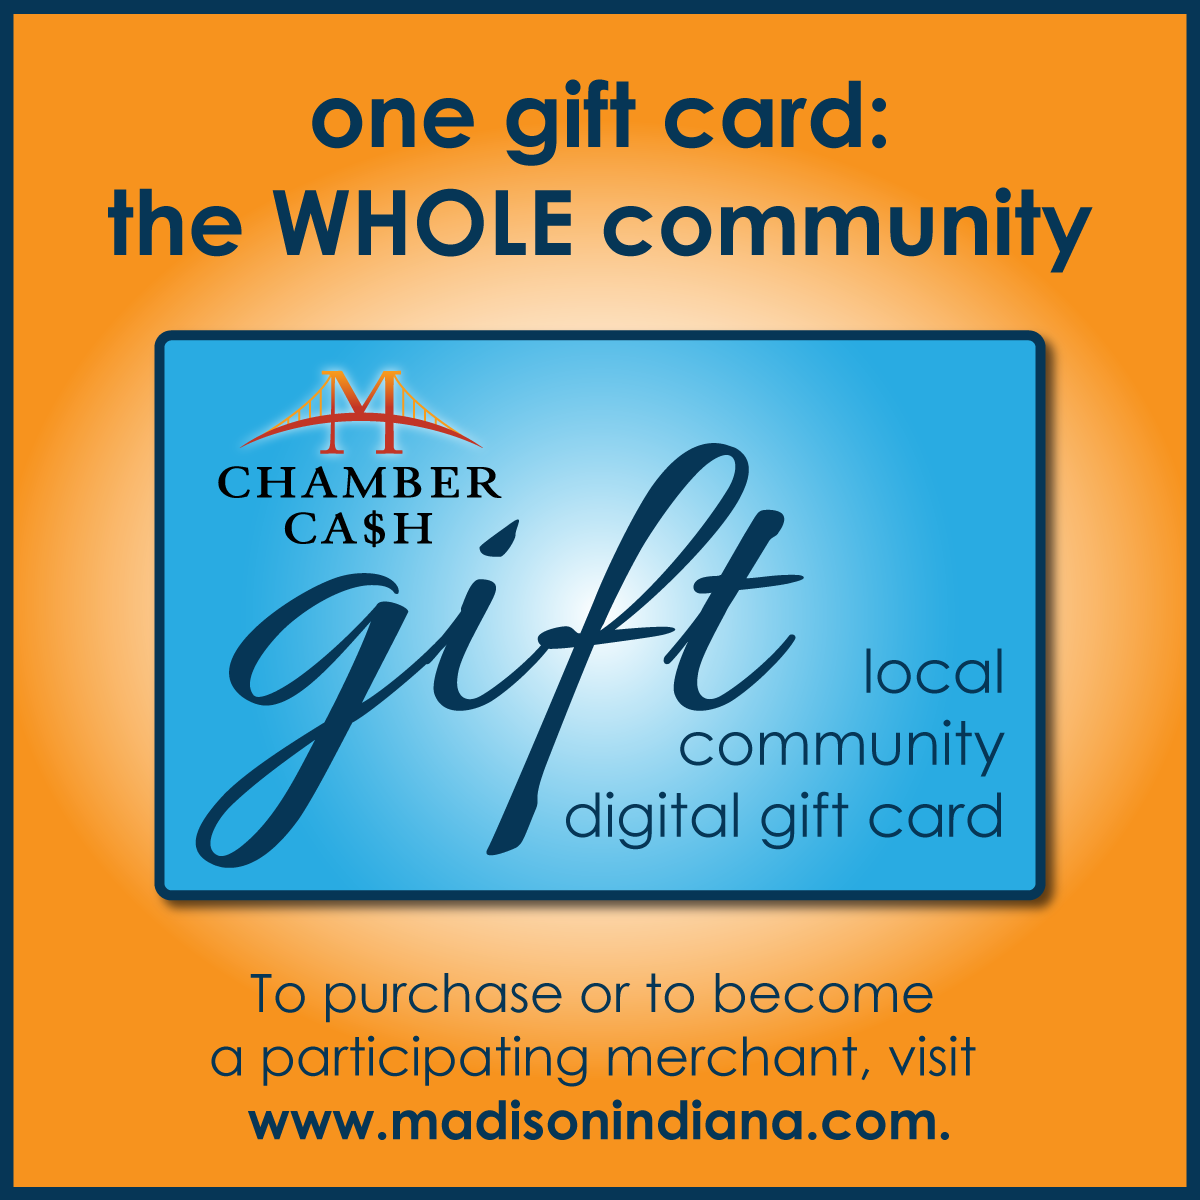 Chamber Cash CA$H local community digital egift card gift certificate - one gift card - the whole community - Madison Indiana